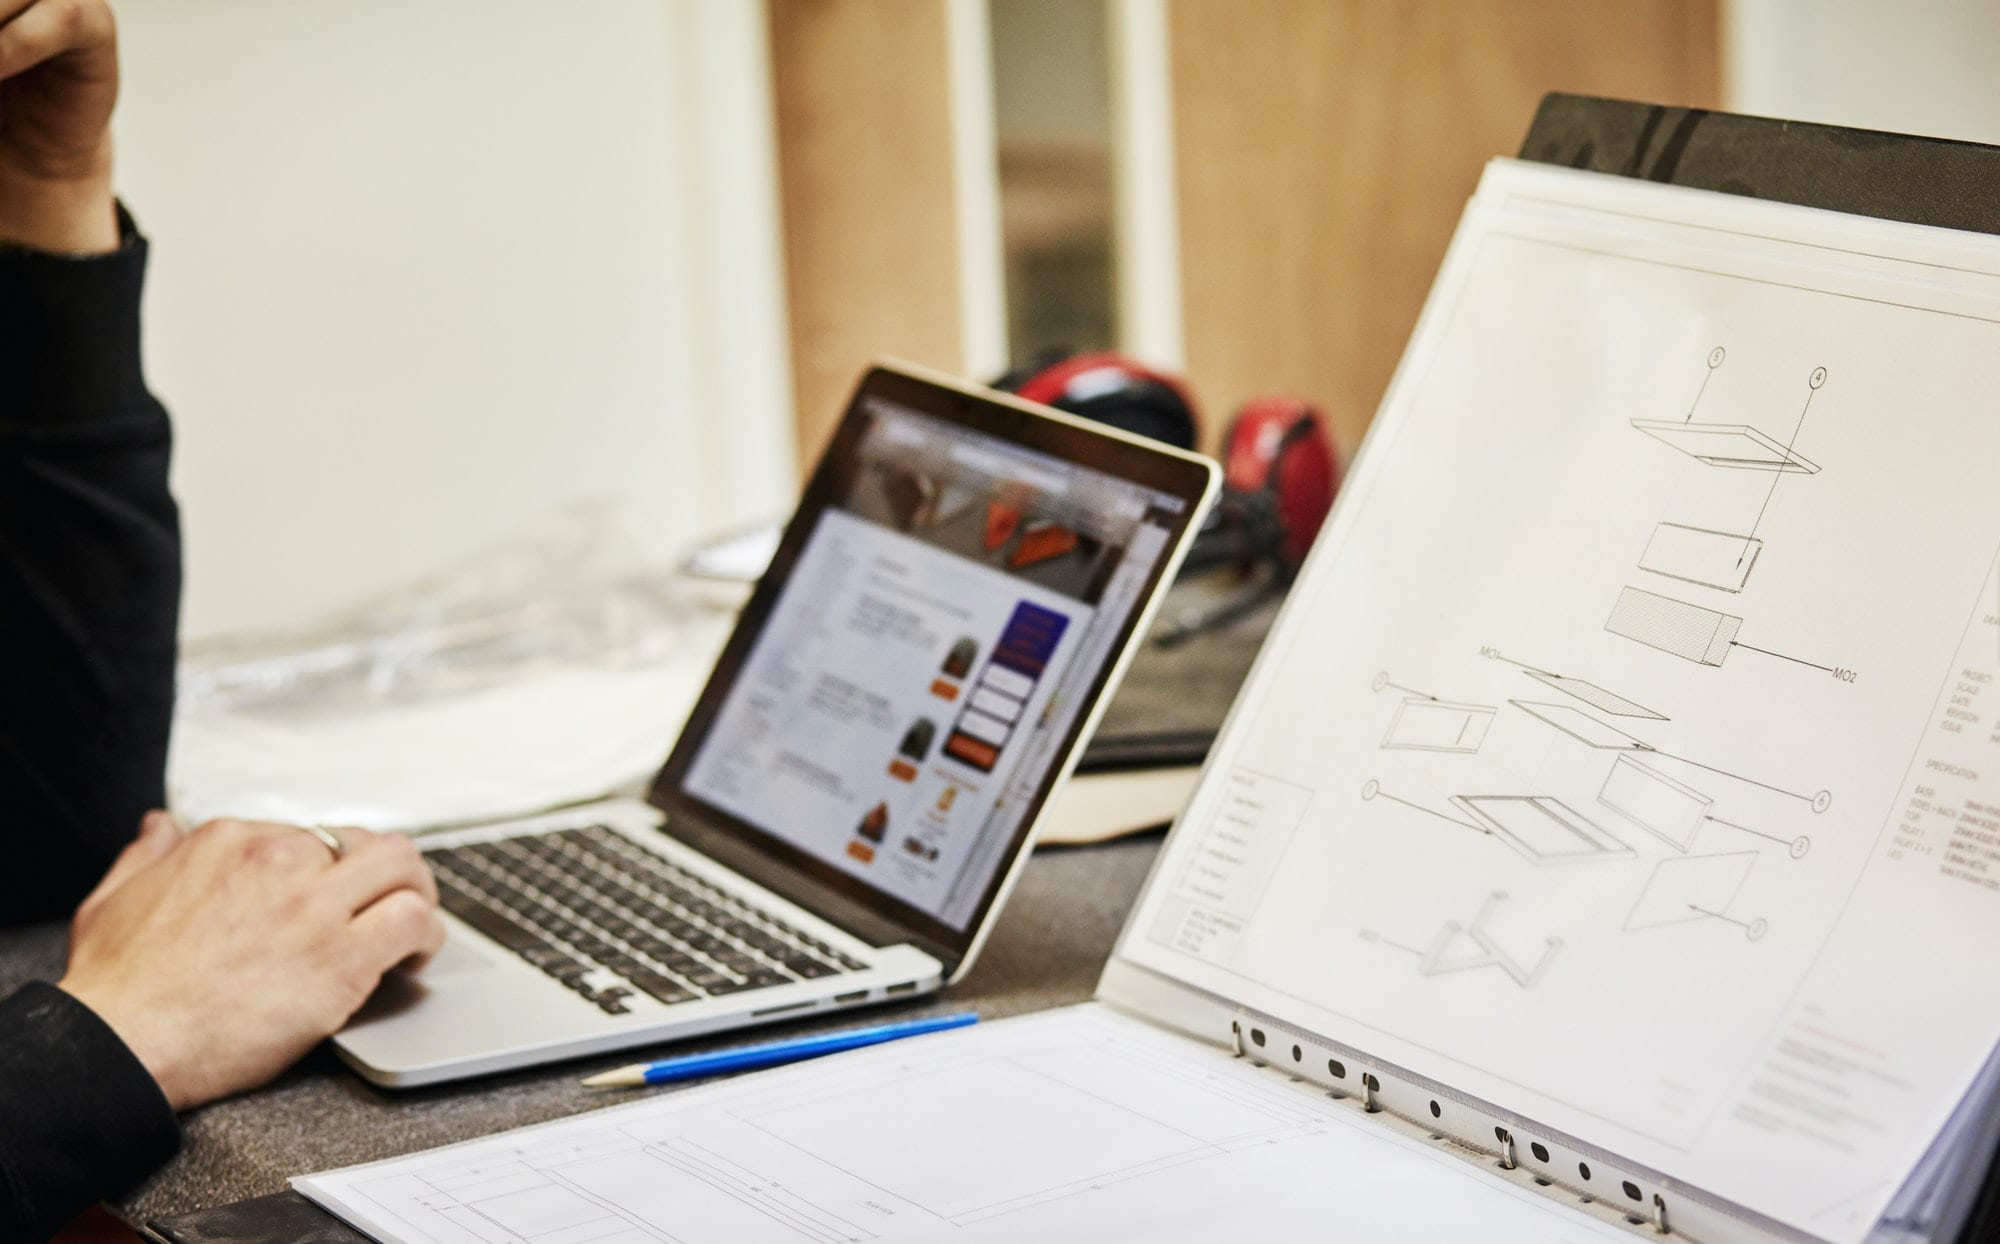 Furniture designer with sketches and laptop